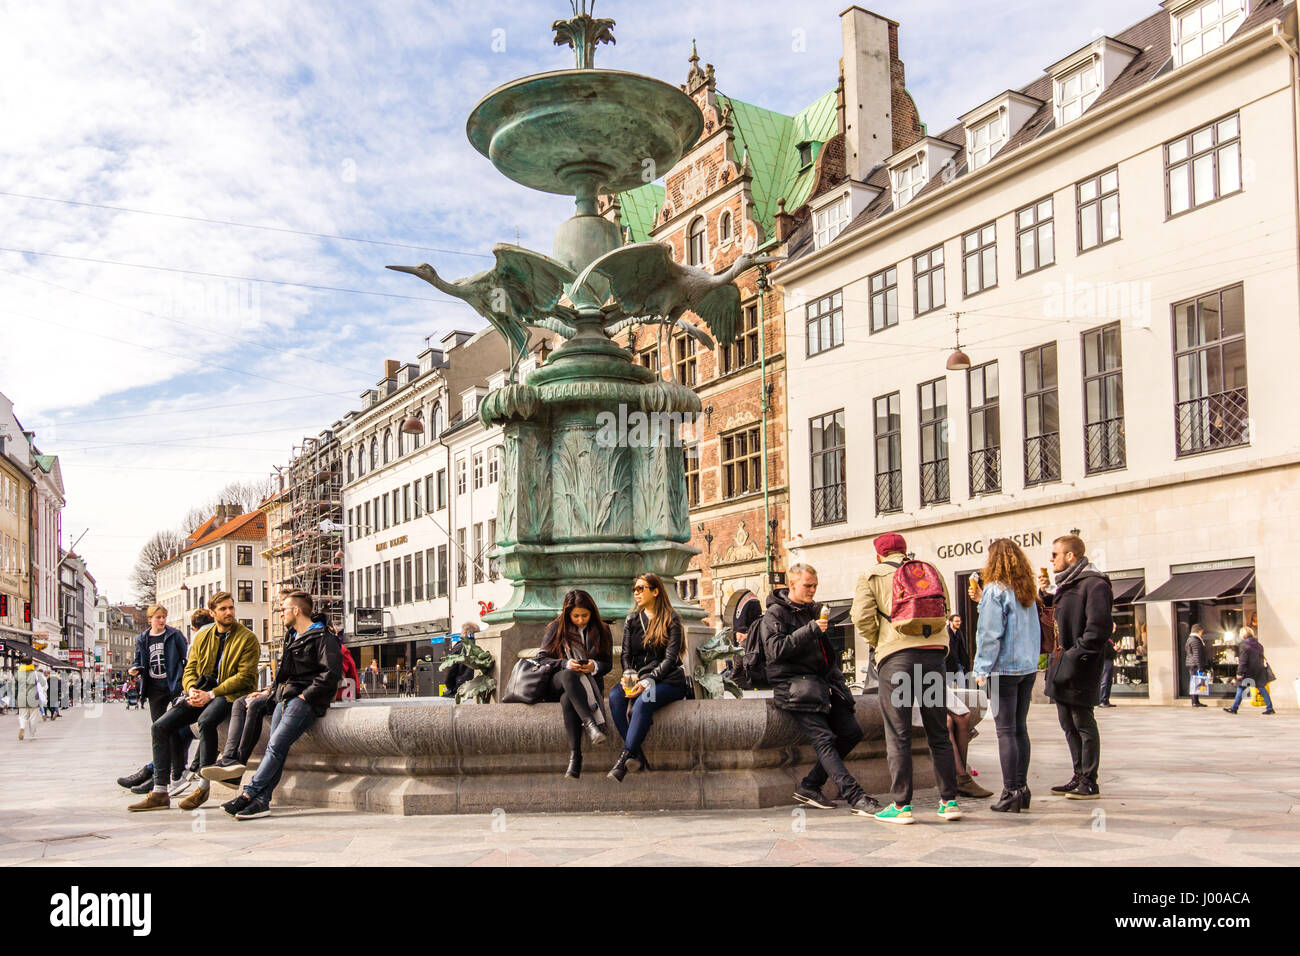 The Stork Fountain with young people sitting on the edge. Amagertorv in central Copenhagen, Denmark - Mars 23, 2017 - Stock Image